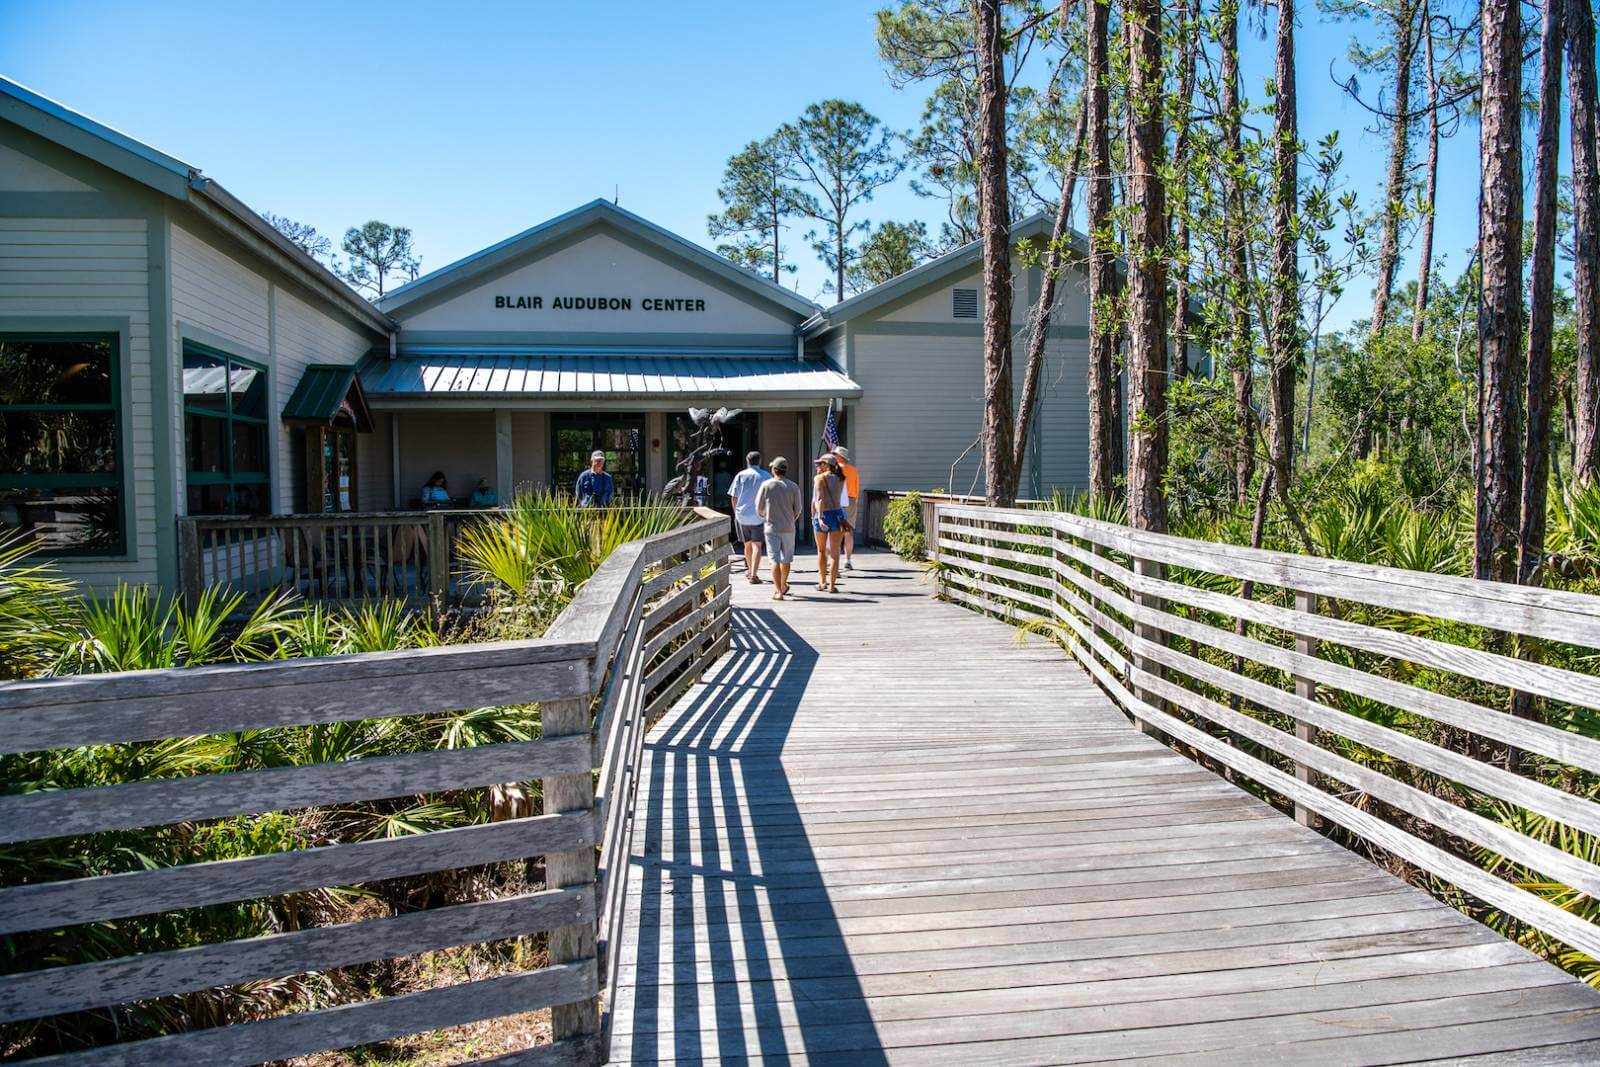 Blair Audubon Center at Corkscrew Swamp Sanctuary in Naples, Florida has a wonderful program of wildlife-related events, talks, guided walks, stargazing, after hours events, and educational activities. Photo by Jennifer Brinkman | Must Do Visitor Guides, MustDo.com